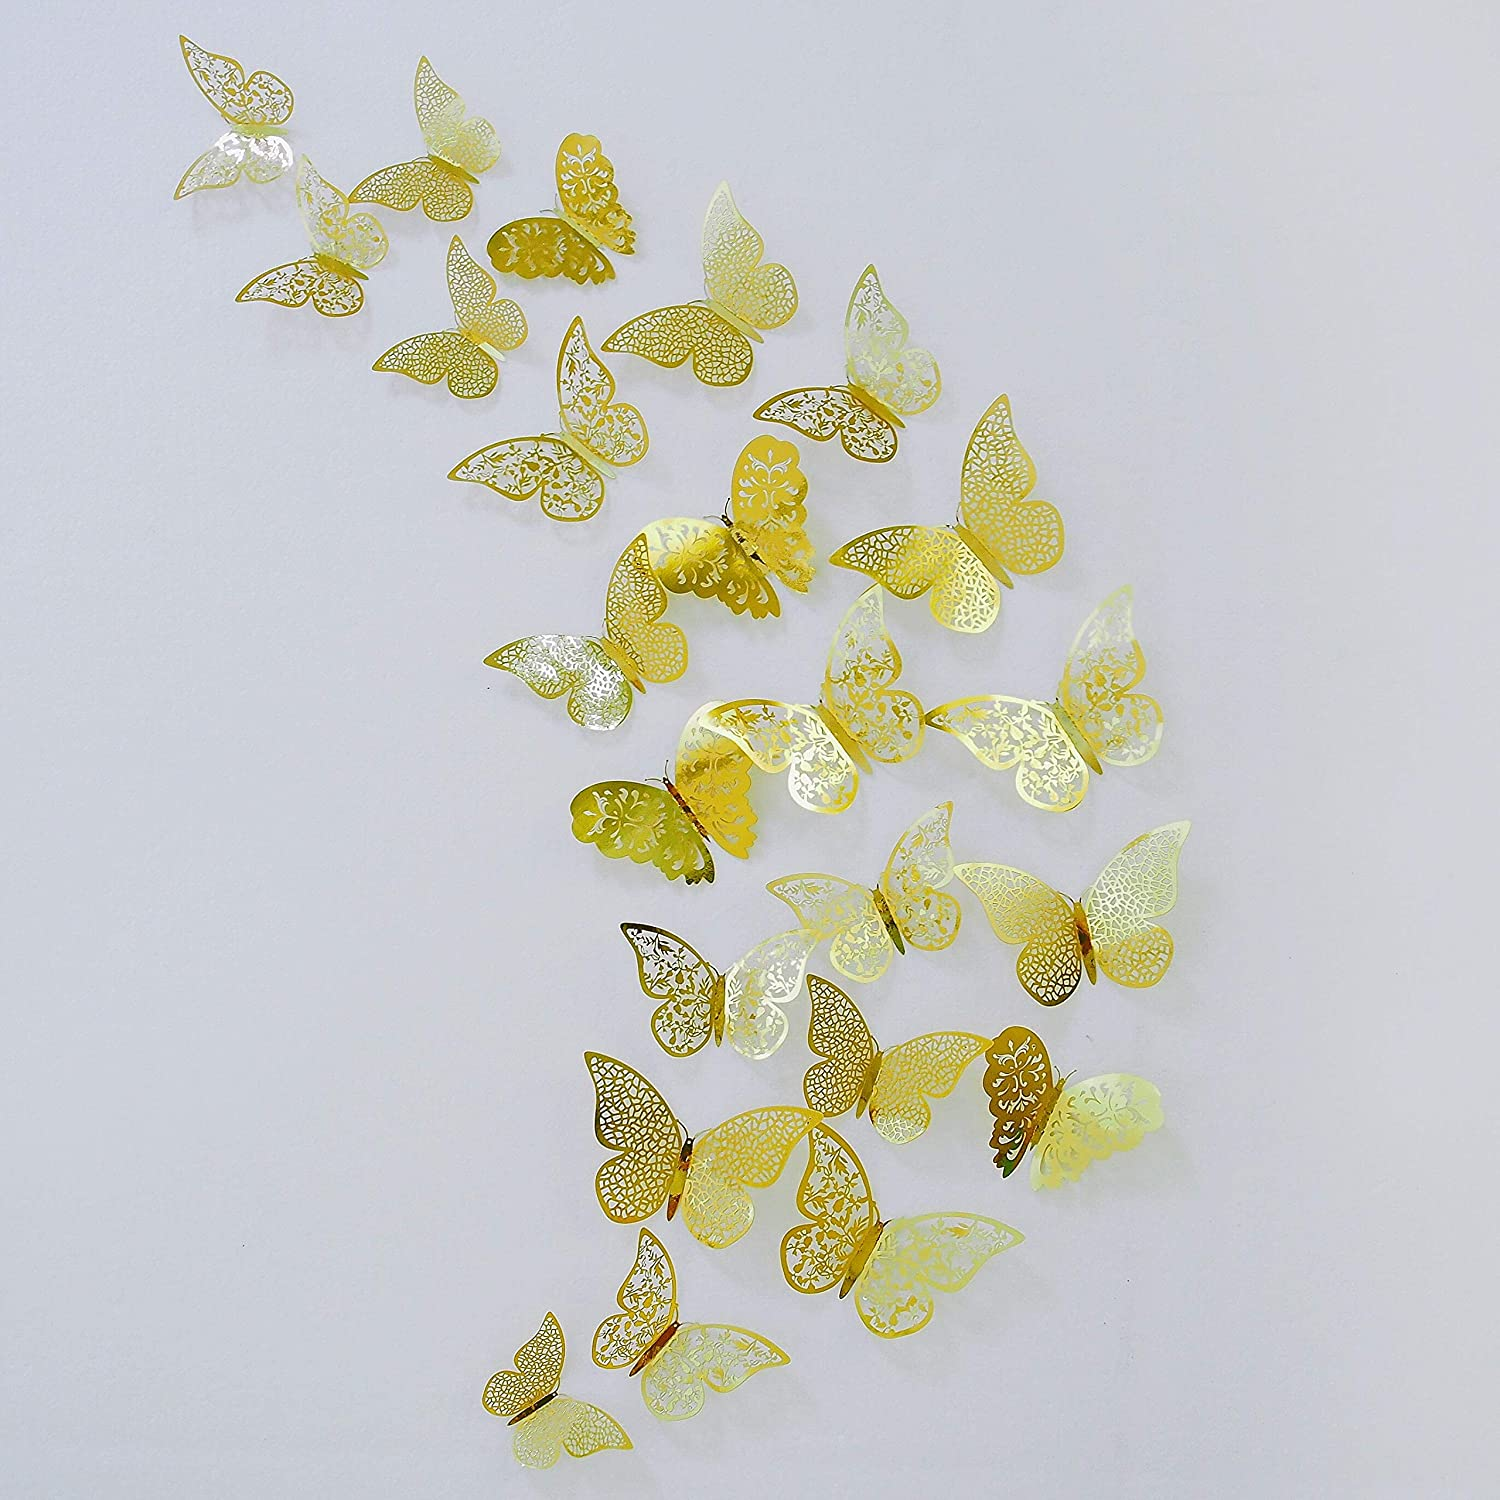 pinkblume Gold Butterfly Decorations Stickers 3D Butterfies Wall Decor DIY Home Decorations Removable Wall Decals Murals for Home Living Room Babys Kids Bedroom Showcase Nursery Art Decor (36PCS)